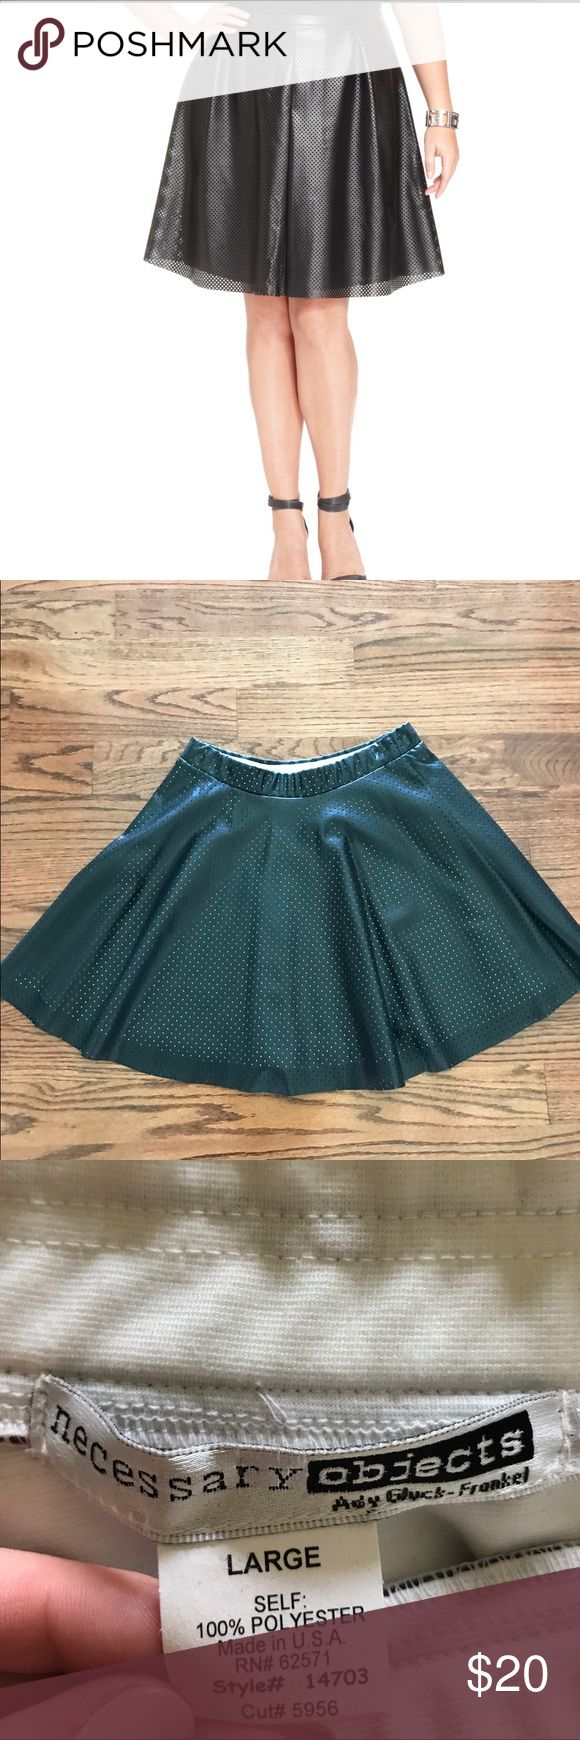 """Black Perforated """"Leather"""" Skater Skirt Sz Large For Sale: Like New (only worn once) black perforated leather like skirt. Brand is Necessary Objects, size is (large) fits like an 8-10. The skirt is NOT LEATHER, but polyester. Made in the USA. Really cute and flirty! First photo is off of google. ASOS Skirts Midi"""